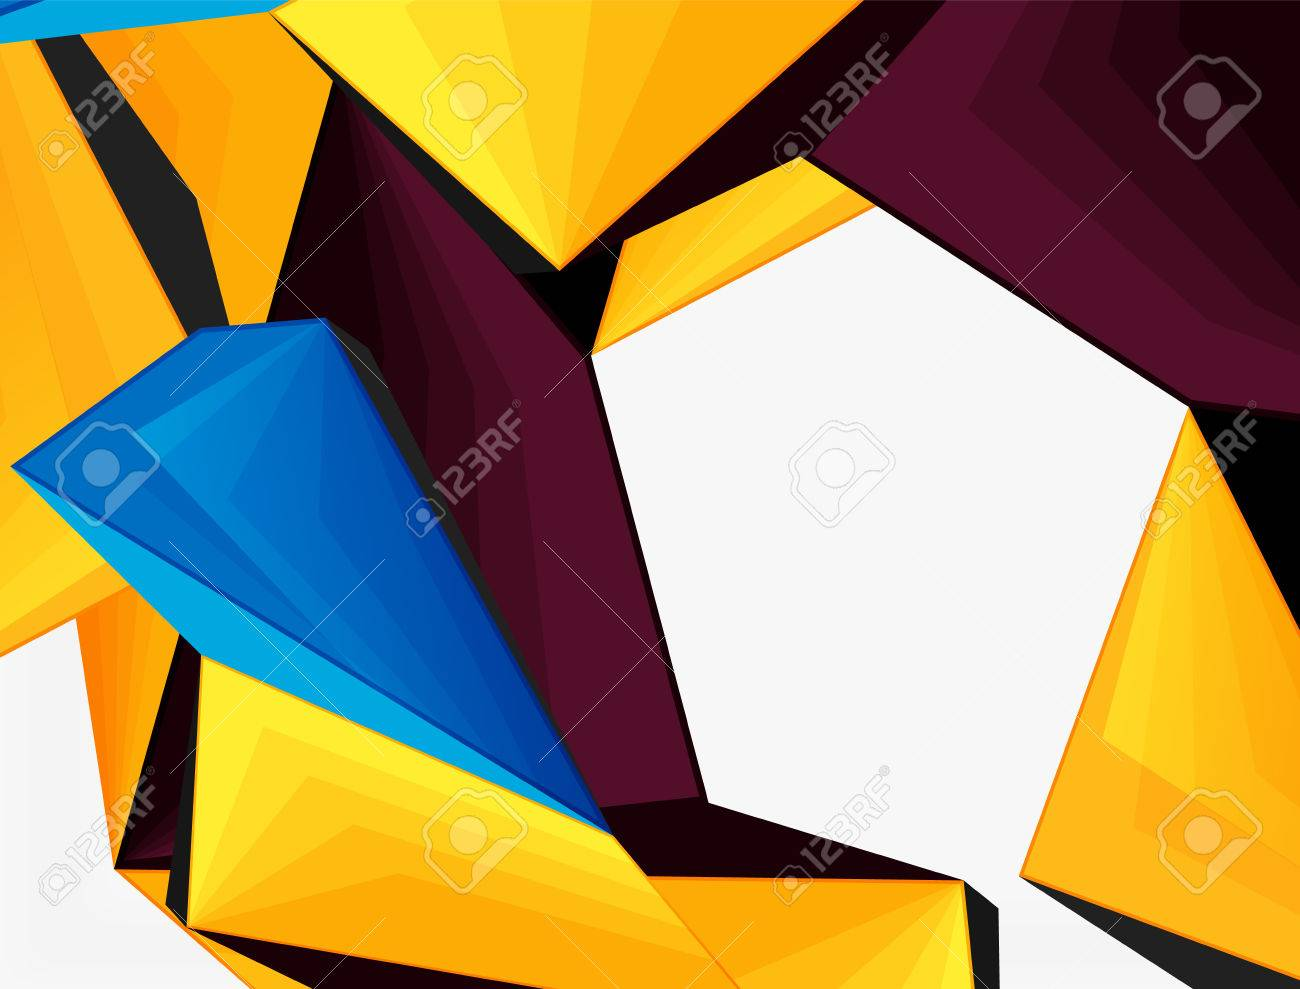 low poly geometric 3d shape futuristic modern background vector